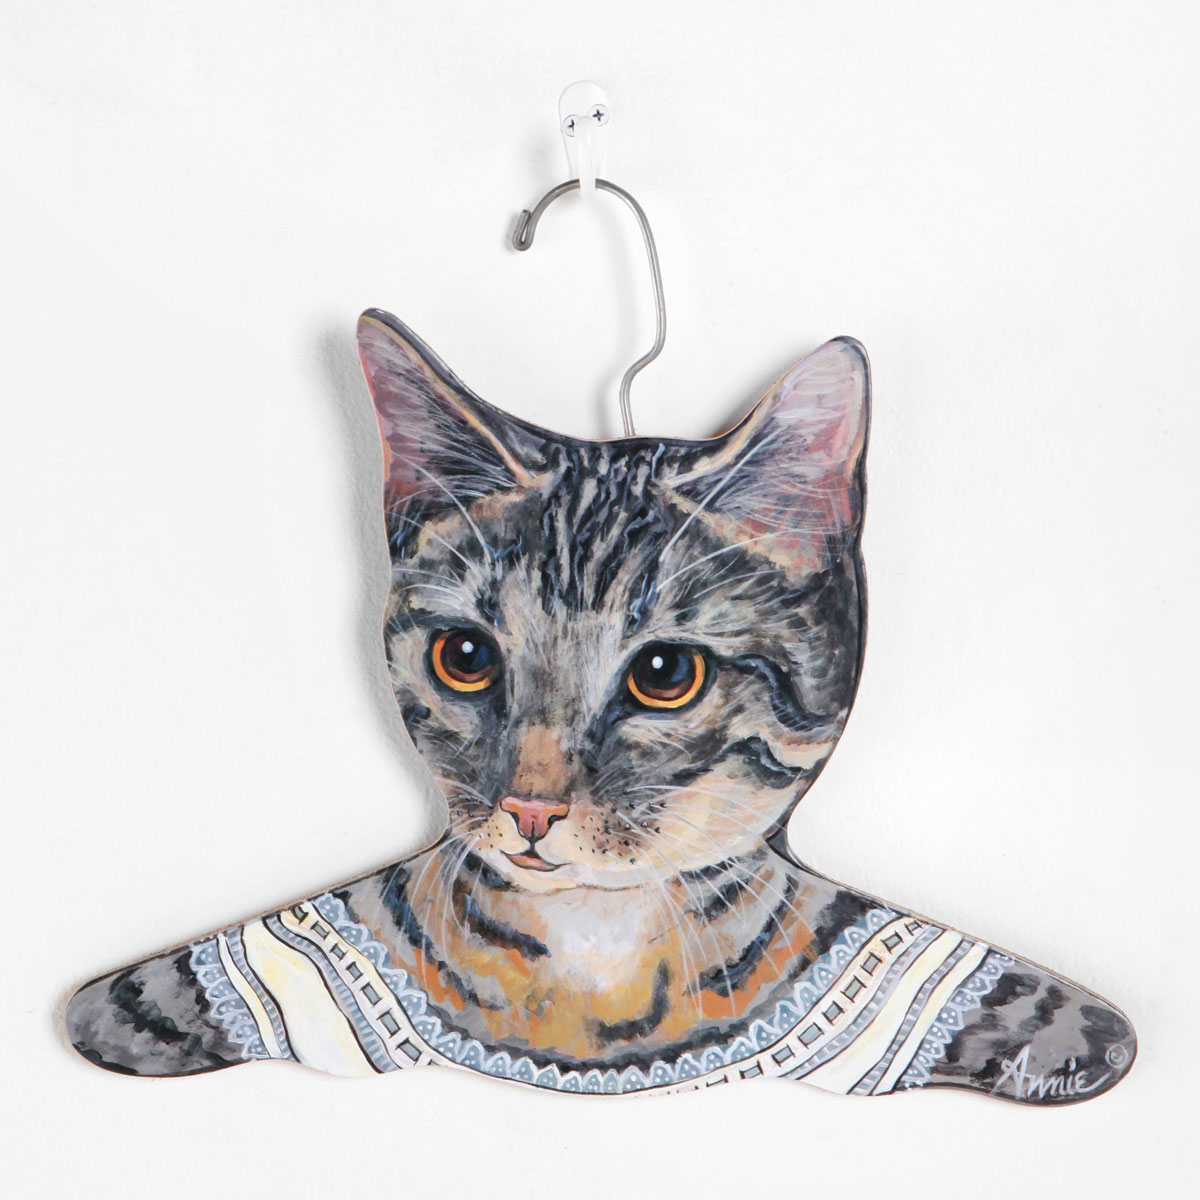 Animal Head Clothes Hangers - The Green Head